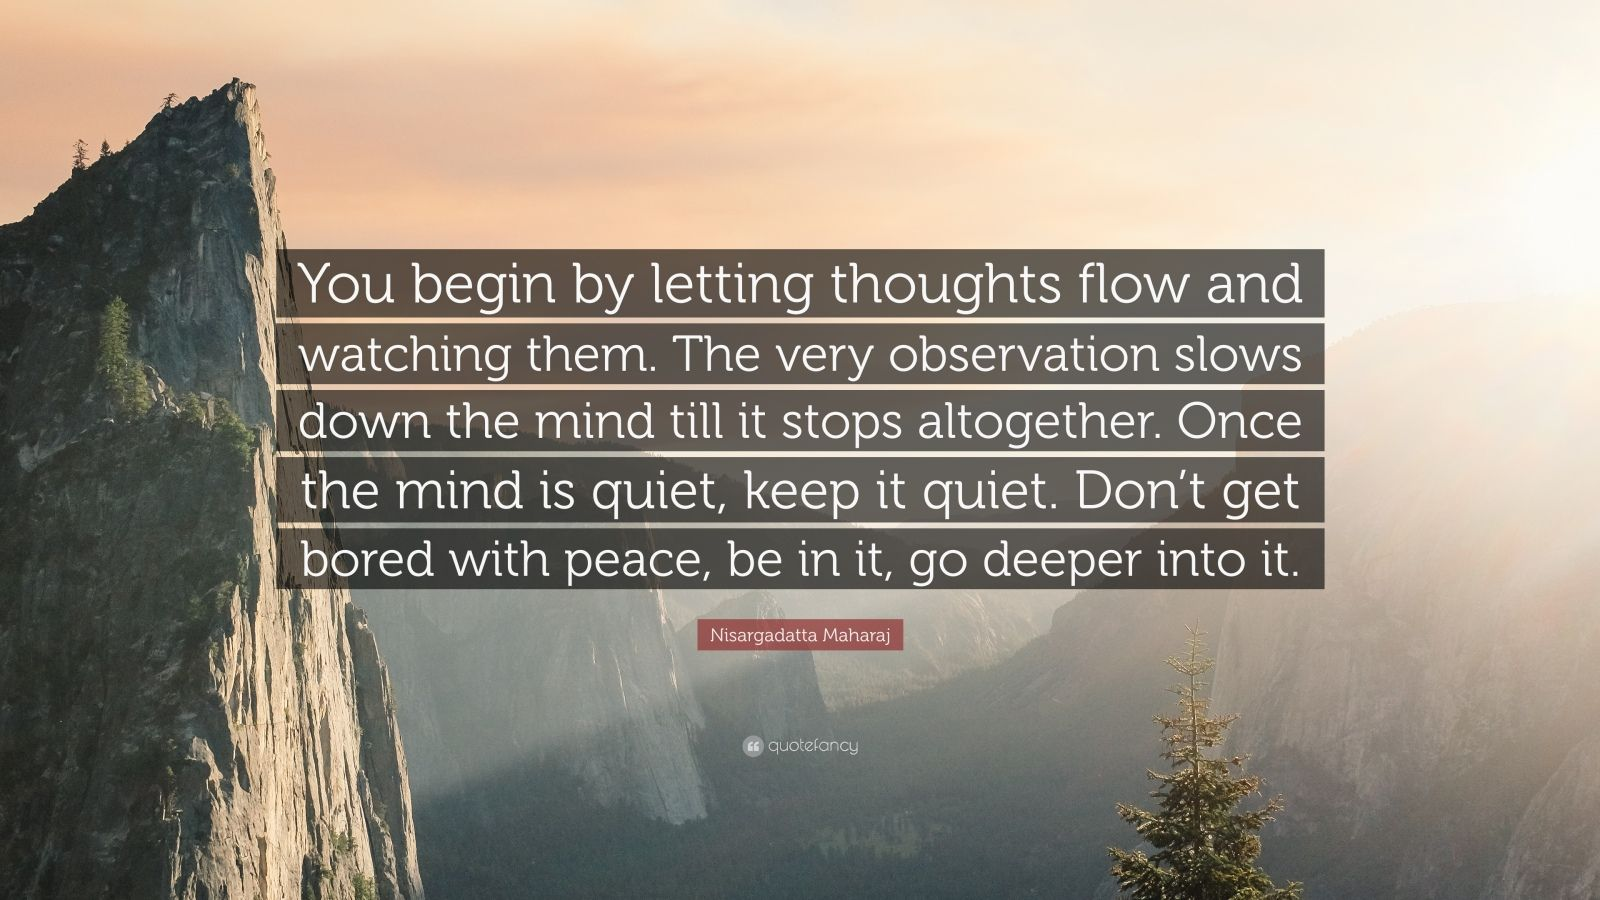 """Nisargadatta Maharaj Quote: """"You begin by letting thoughts flow and watching them. The very observation slows down the mind till it stops altogether. Once the mind is quiet, keep it quiet. Don't get bored with peace, be in it, go deeper into it."""""""